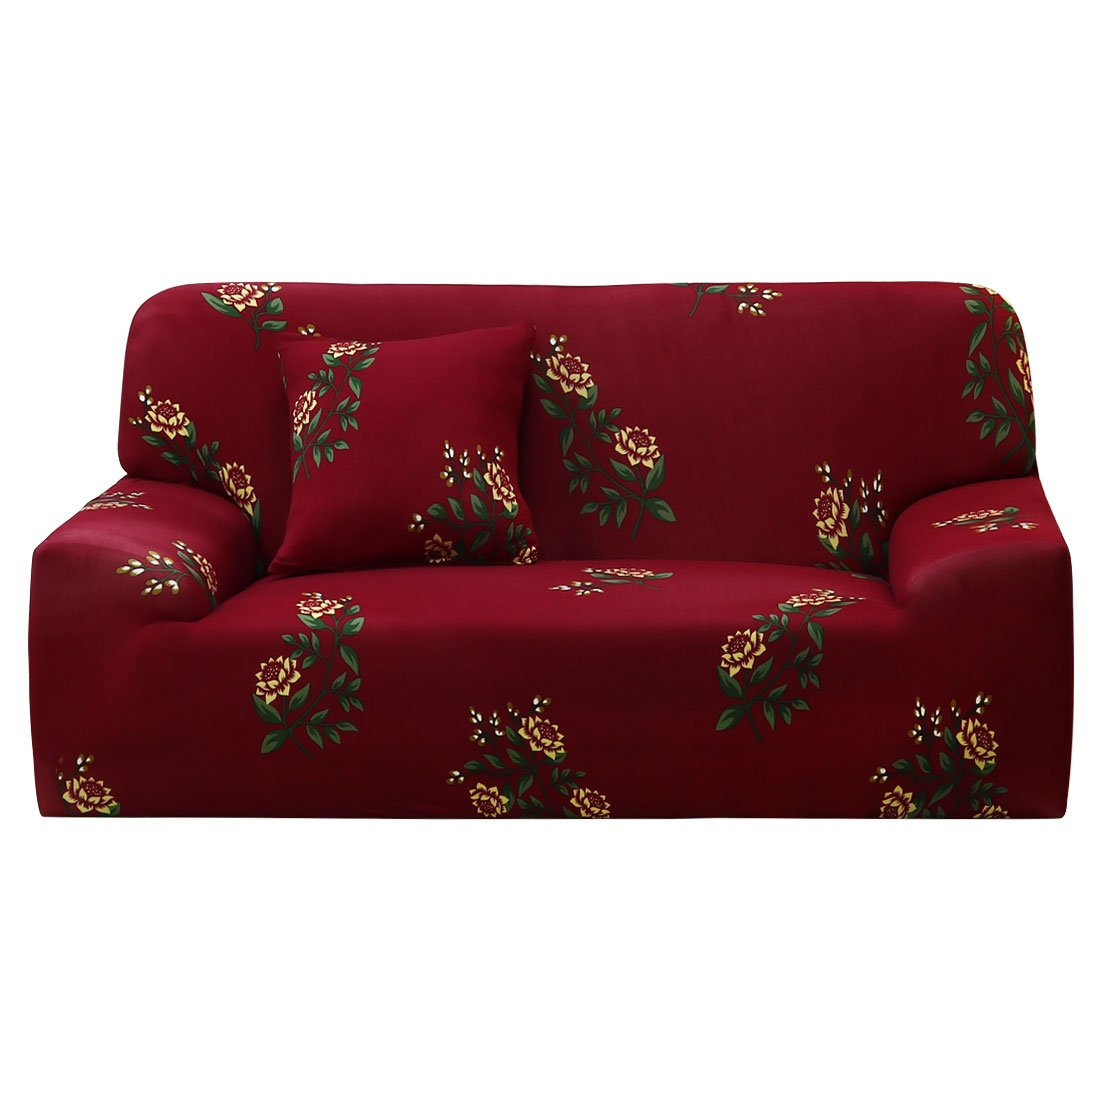 Cheap Sofa Covers Slipcovers Find Sofa Covers Slipcovers Deals On